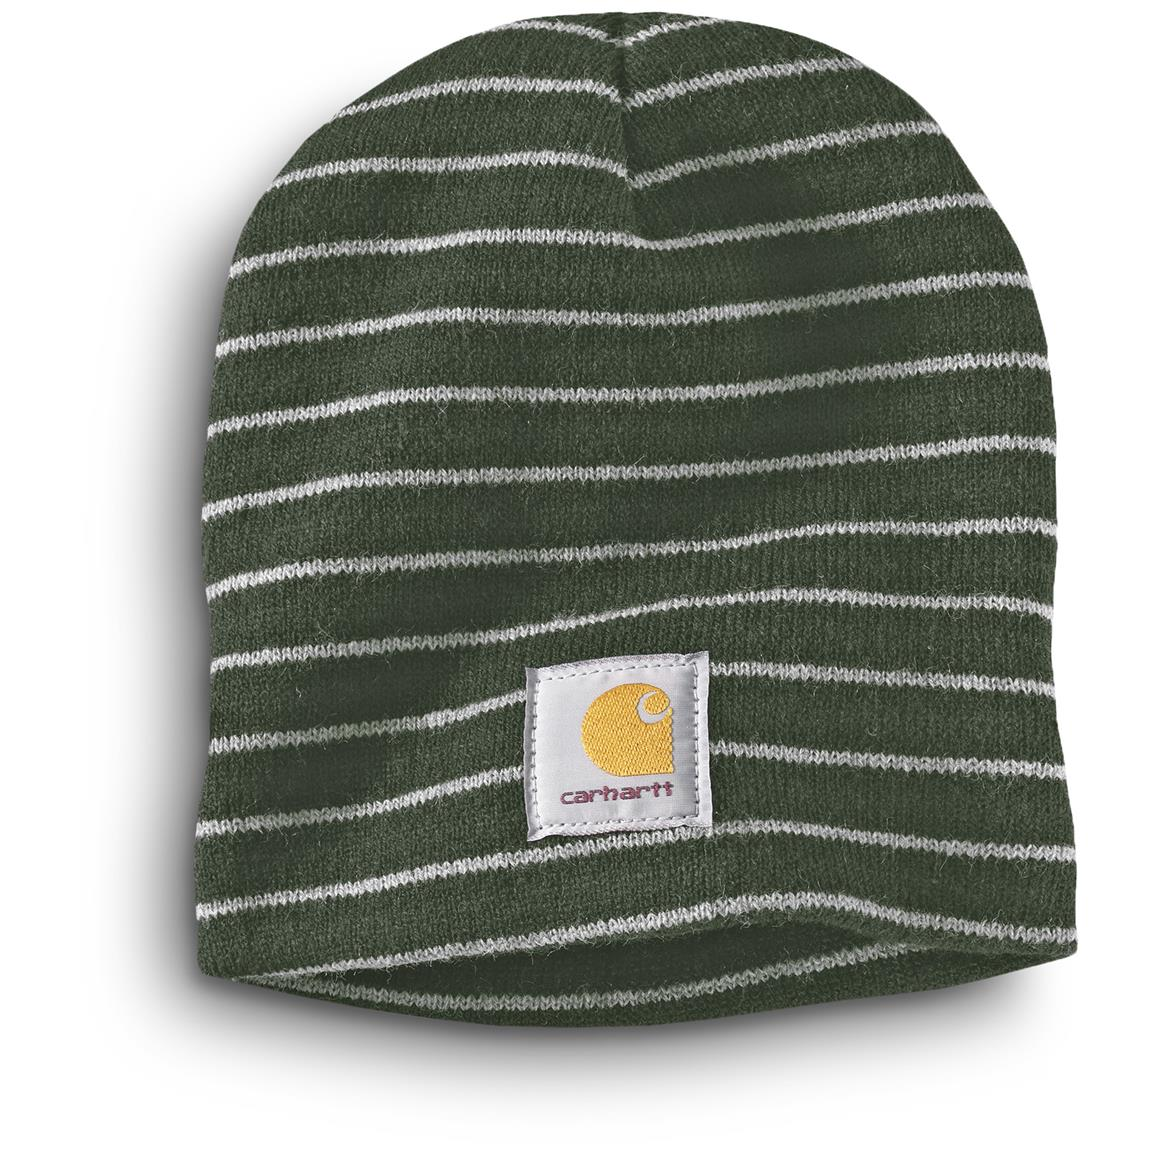 Carhartt Men's Prescott Knit Beanie Caps, 3 Pack, Green